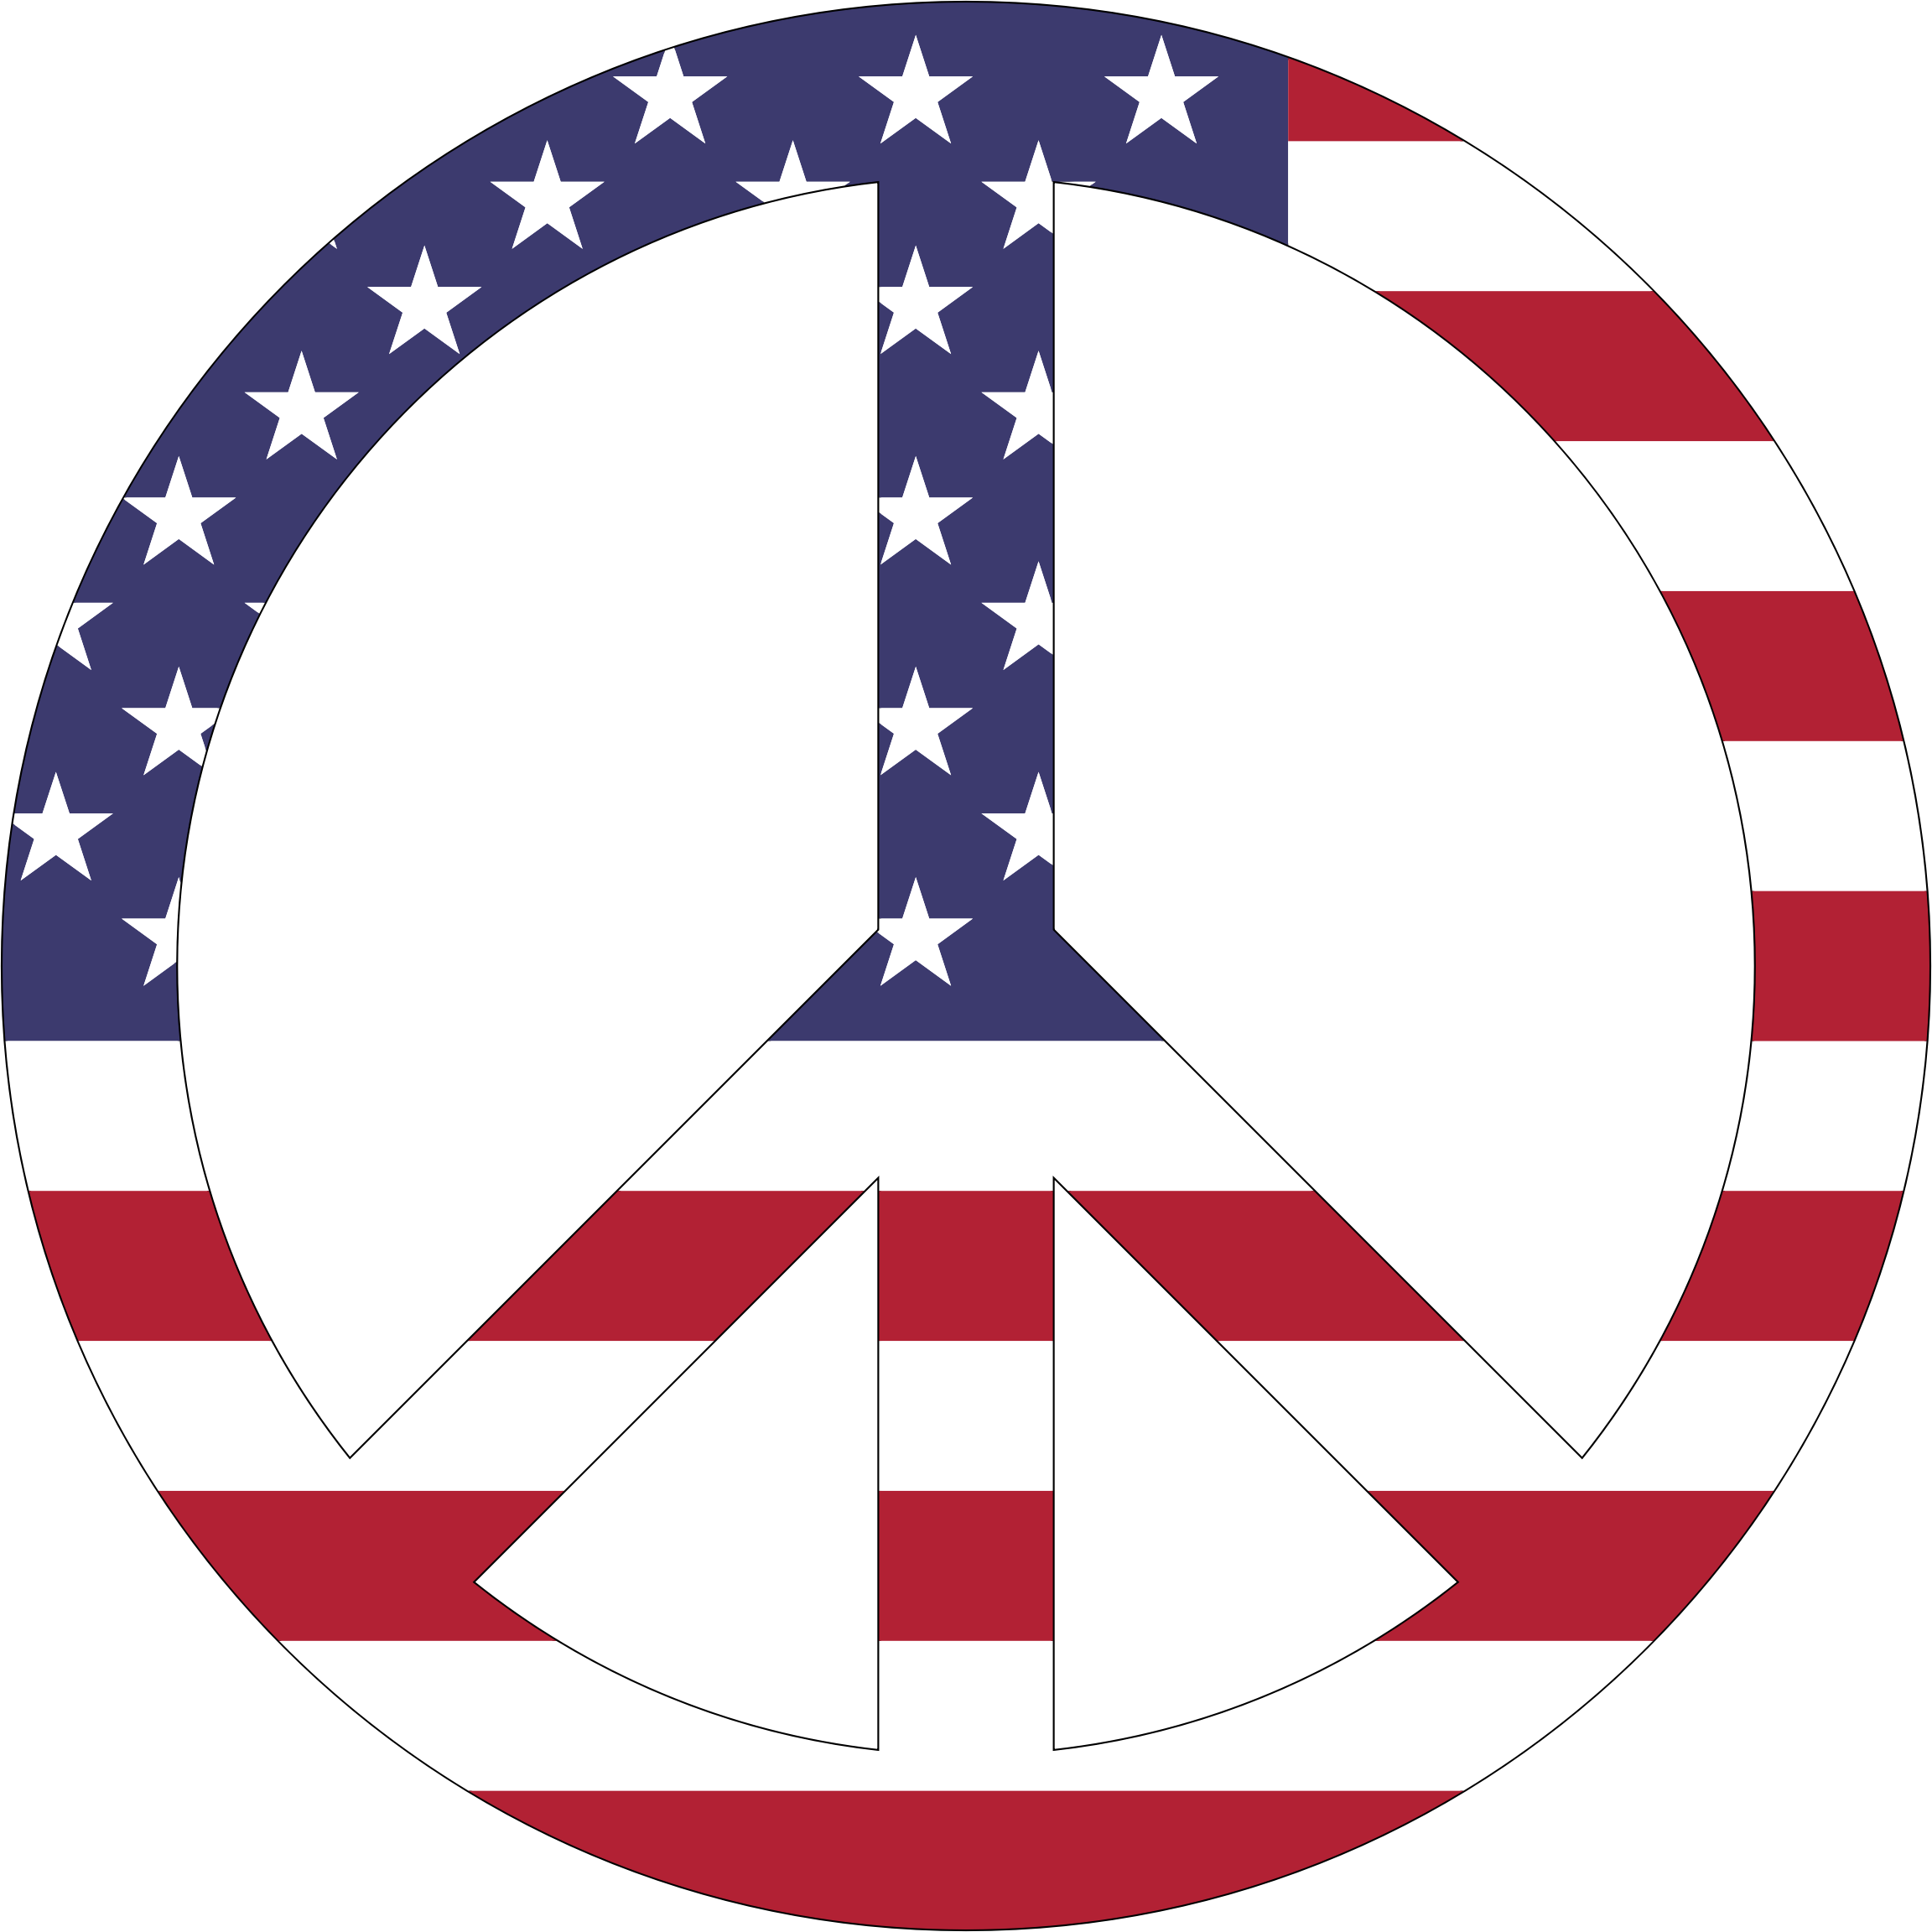 American Flag Peace Sign With Stroke by GDJ